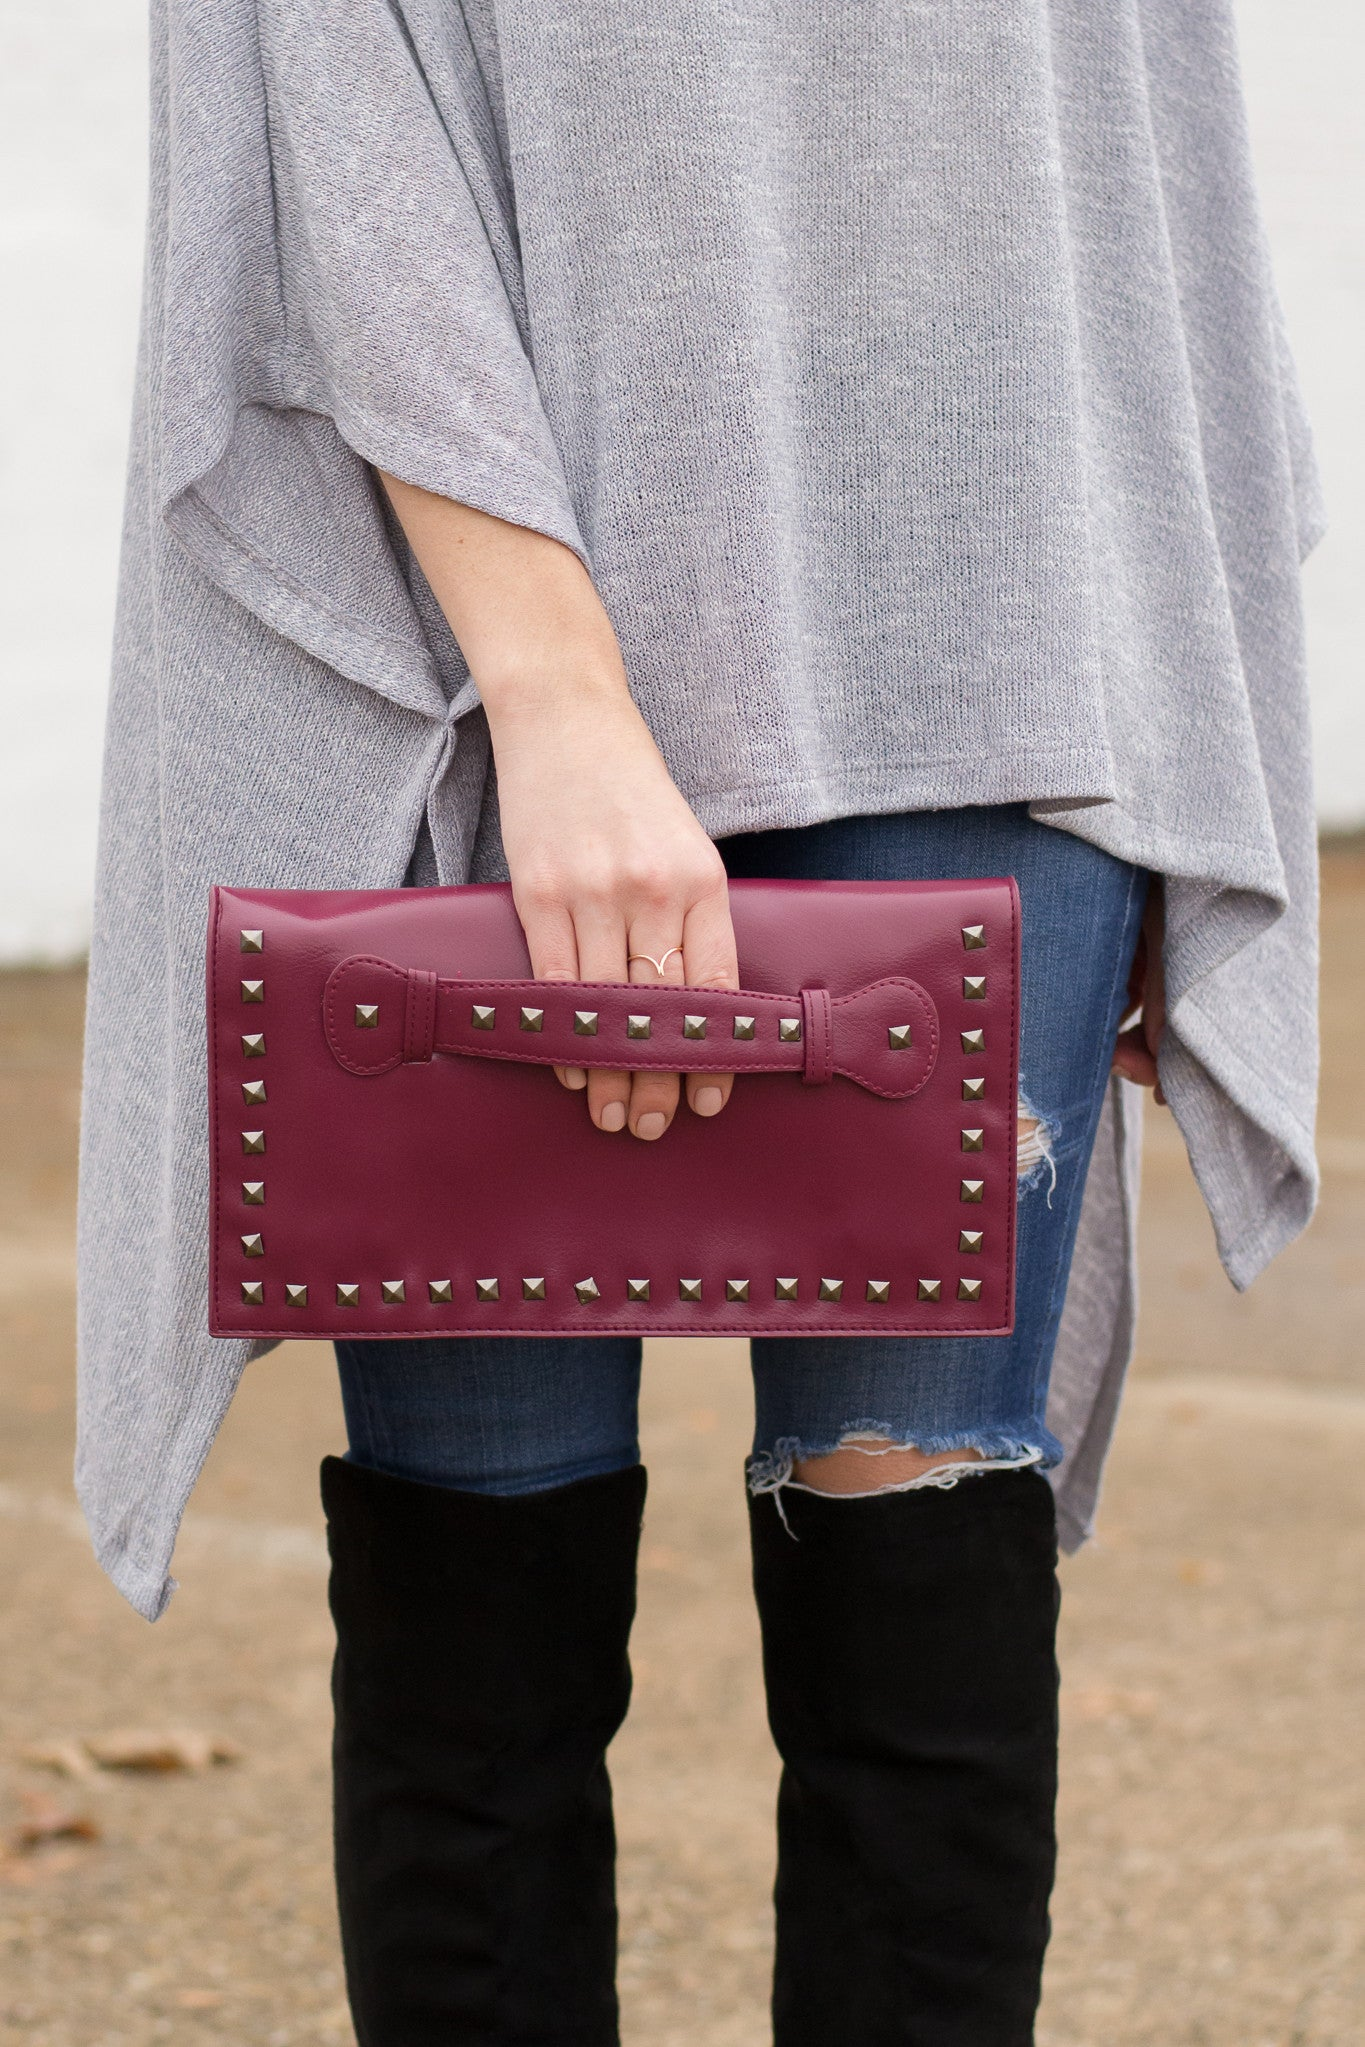 Edgy Burgundy Clutch styled with OTK Boots